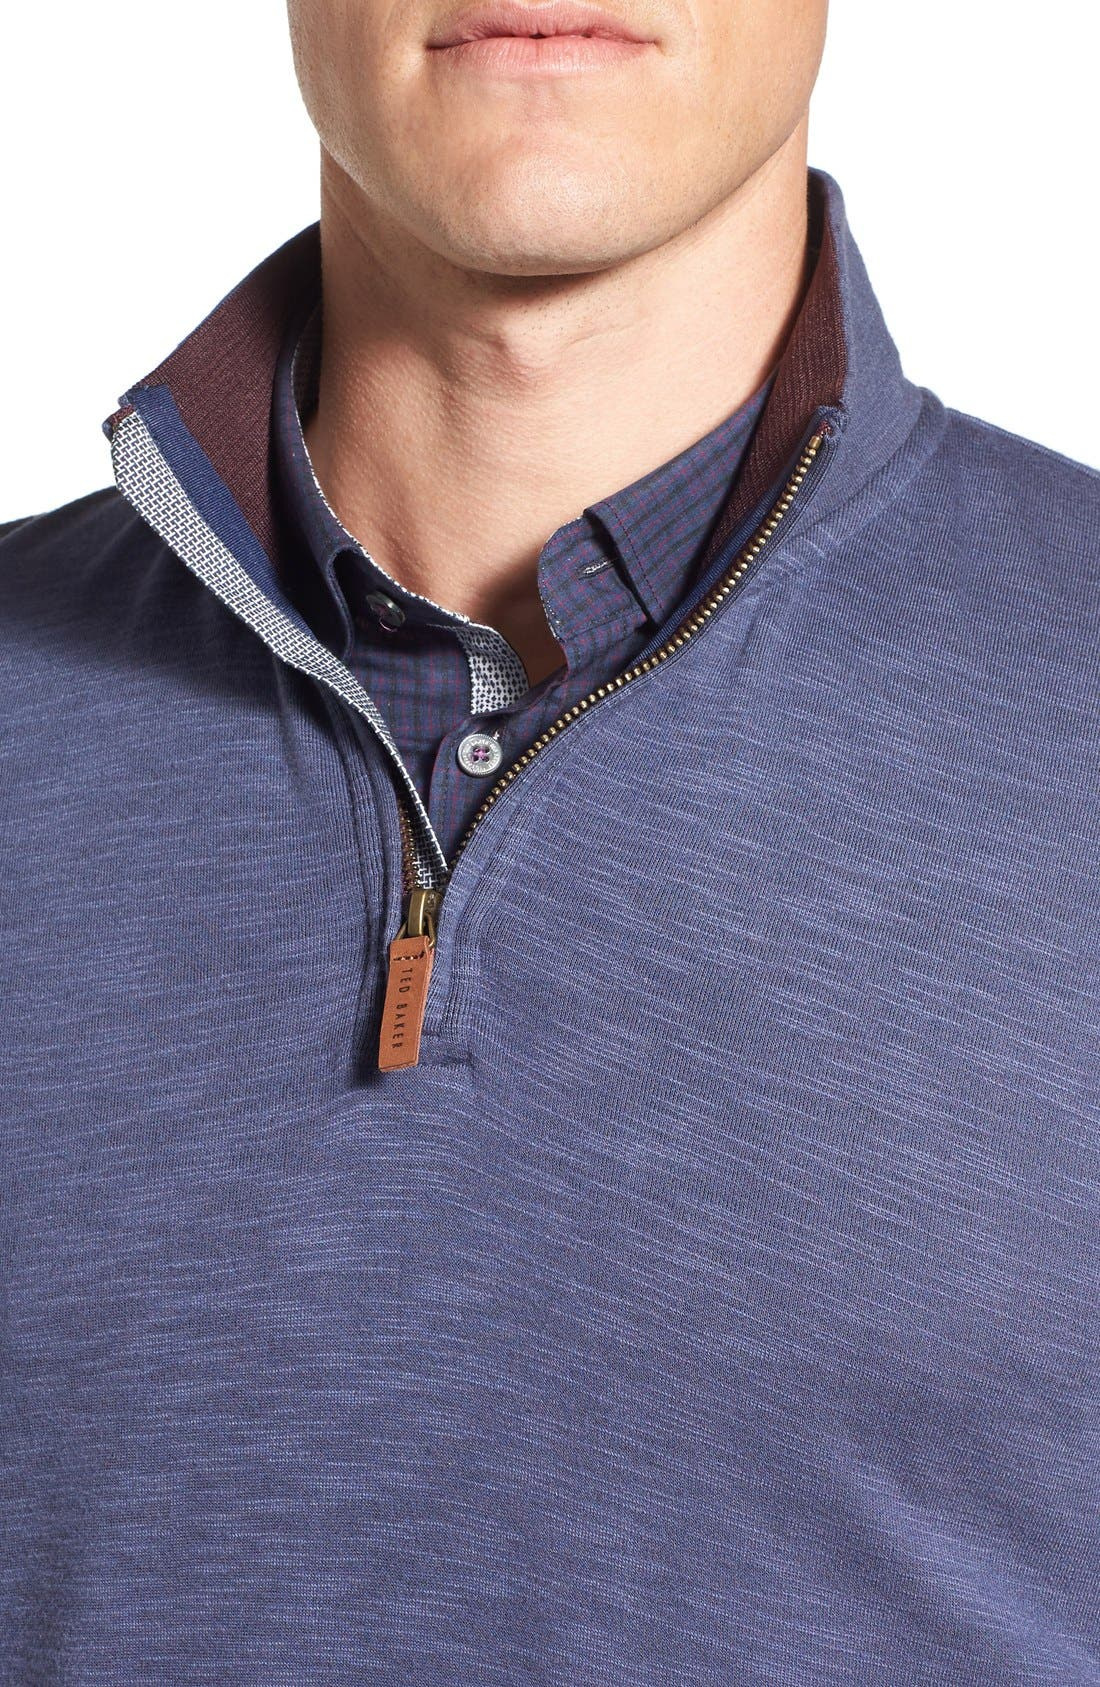 'Mandra' Quarter Zip Pullover,                             Alternate thumbnail 4, color,                             Dark Blue